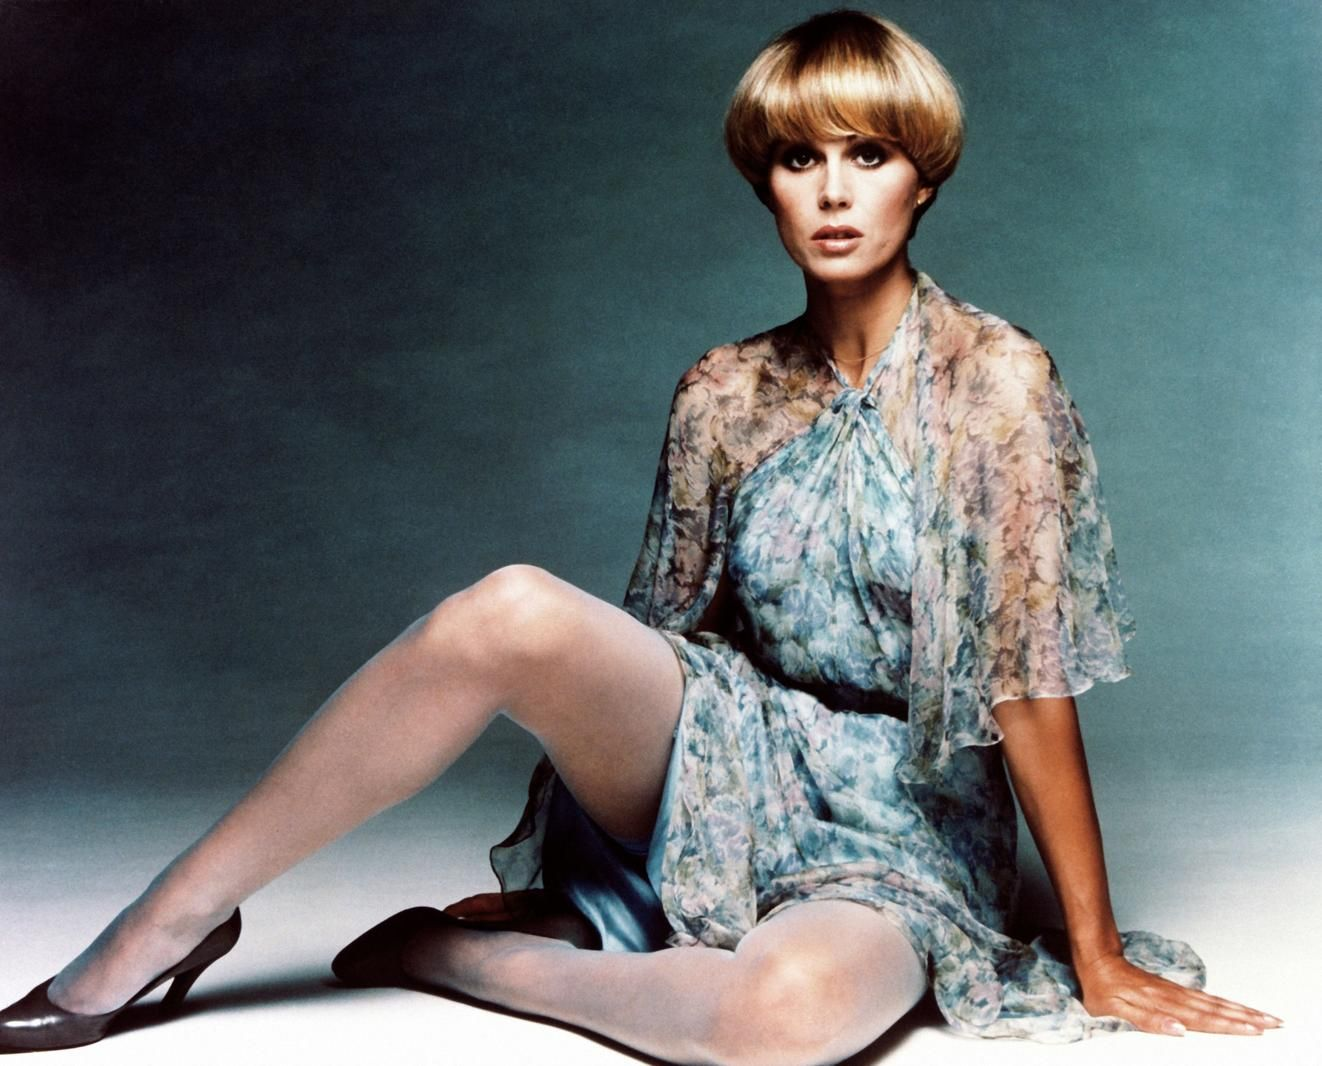 Joanna lumley pantyhose log